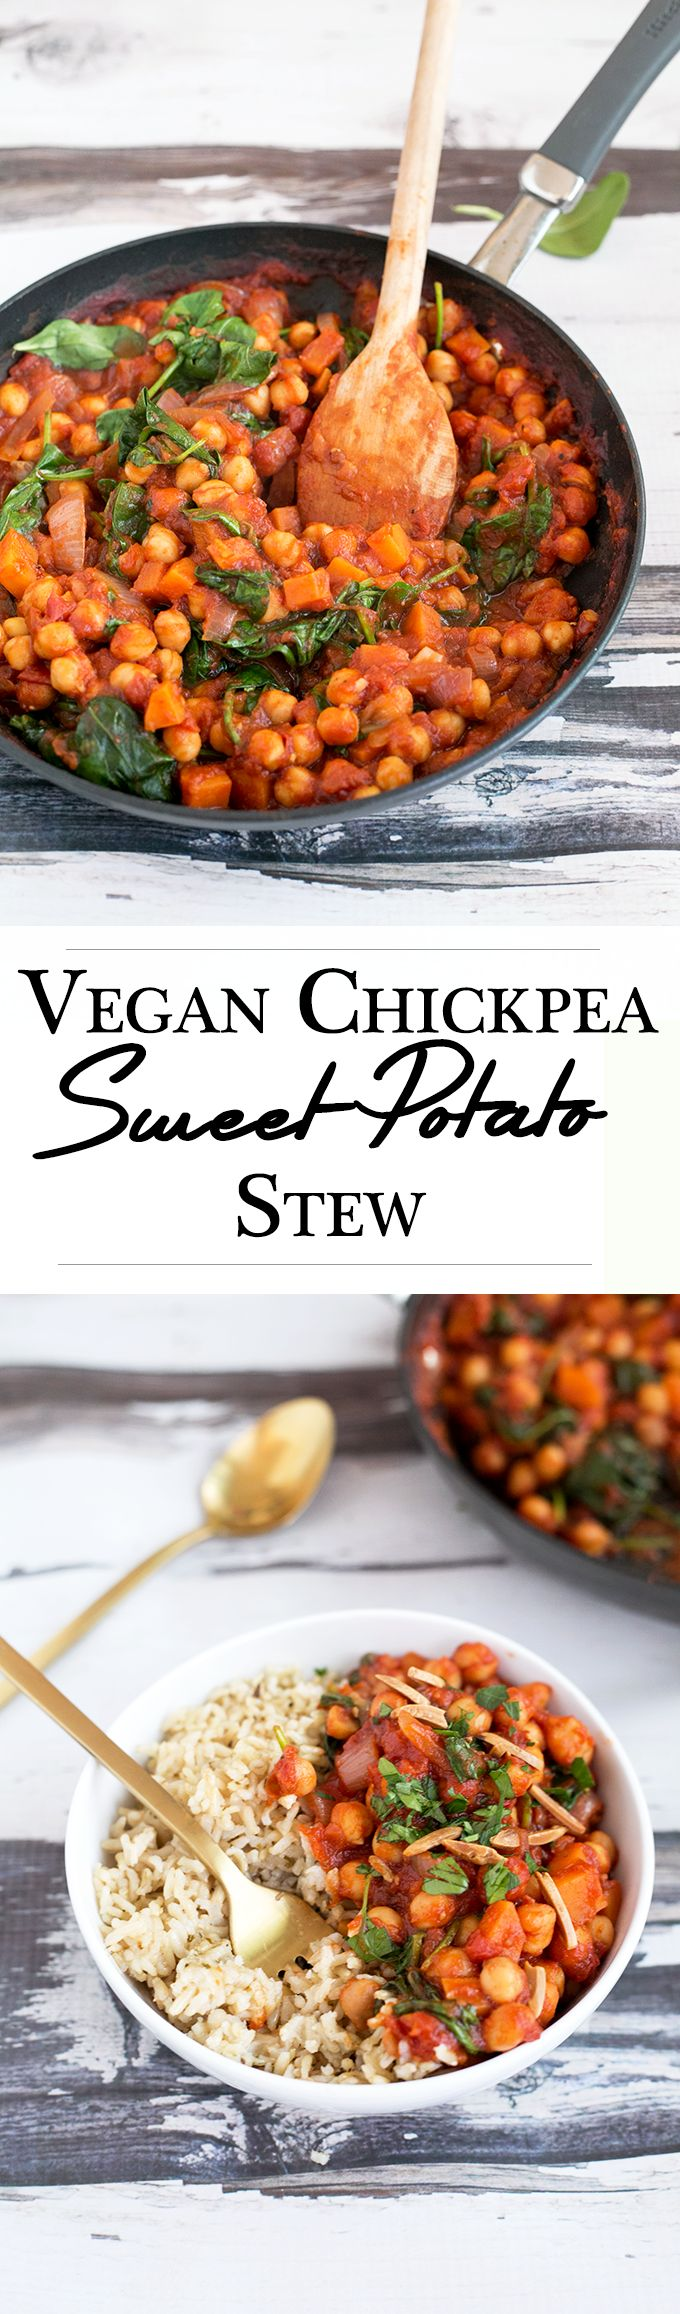 Spanish Chickpea and Sweet Potato Stew. Healthy, hearty, delicious and made in under 45 minutes. 100% Vegan.